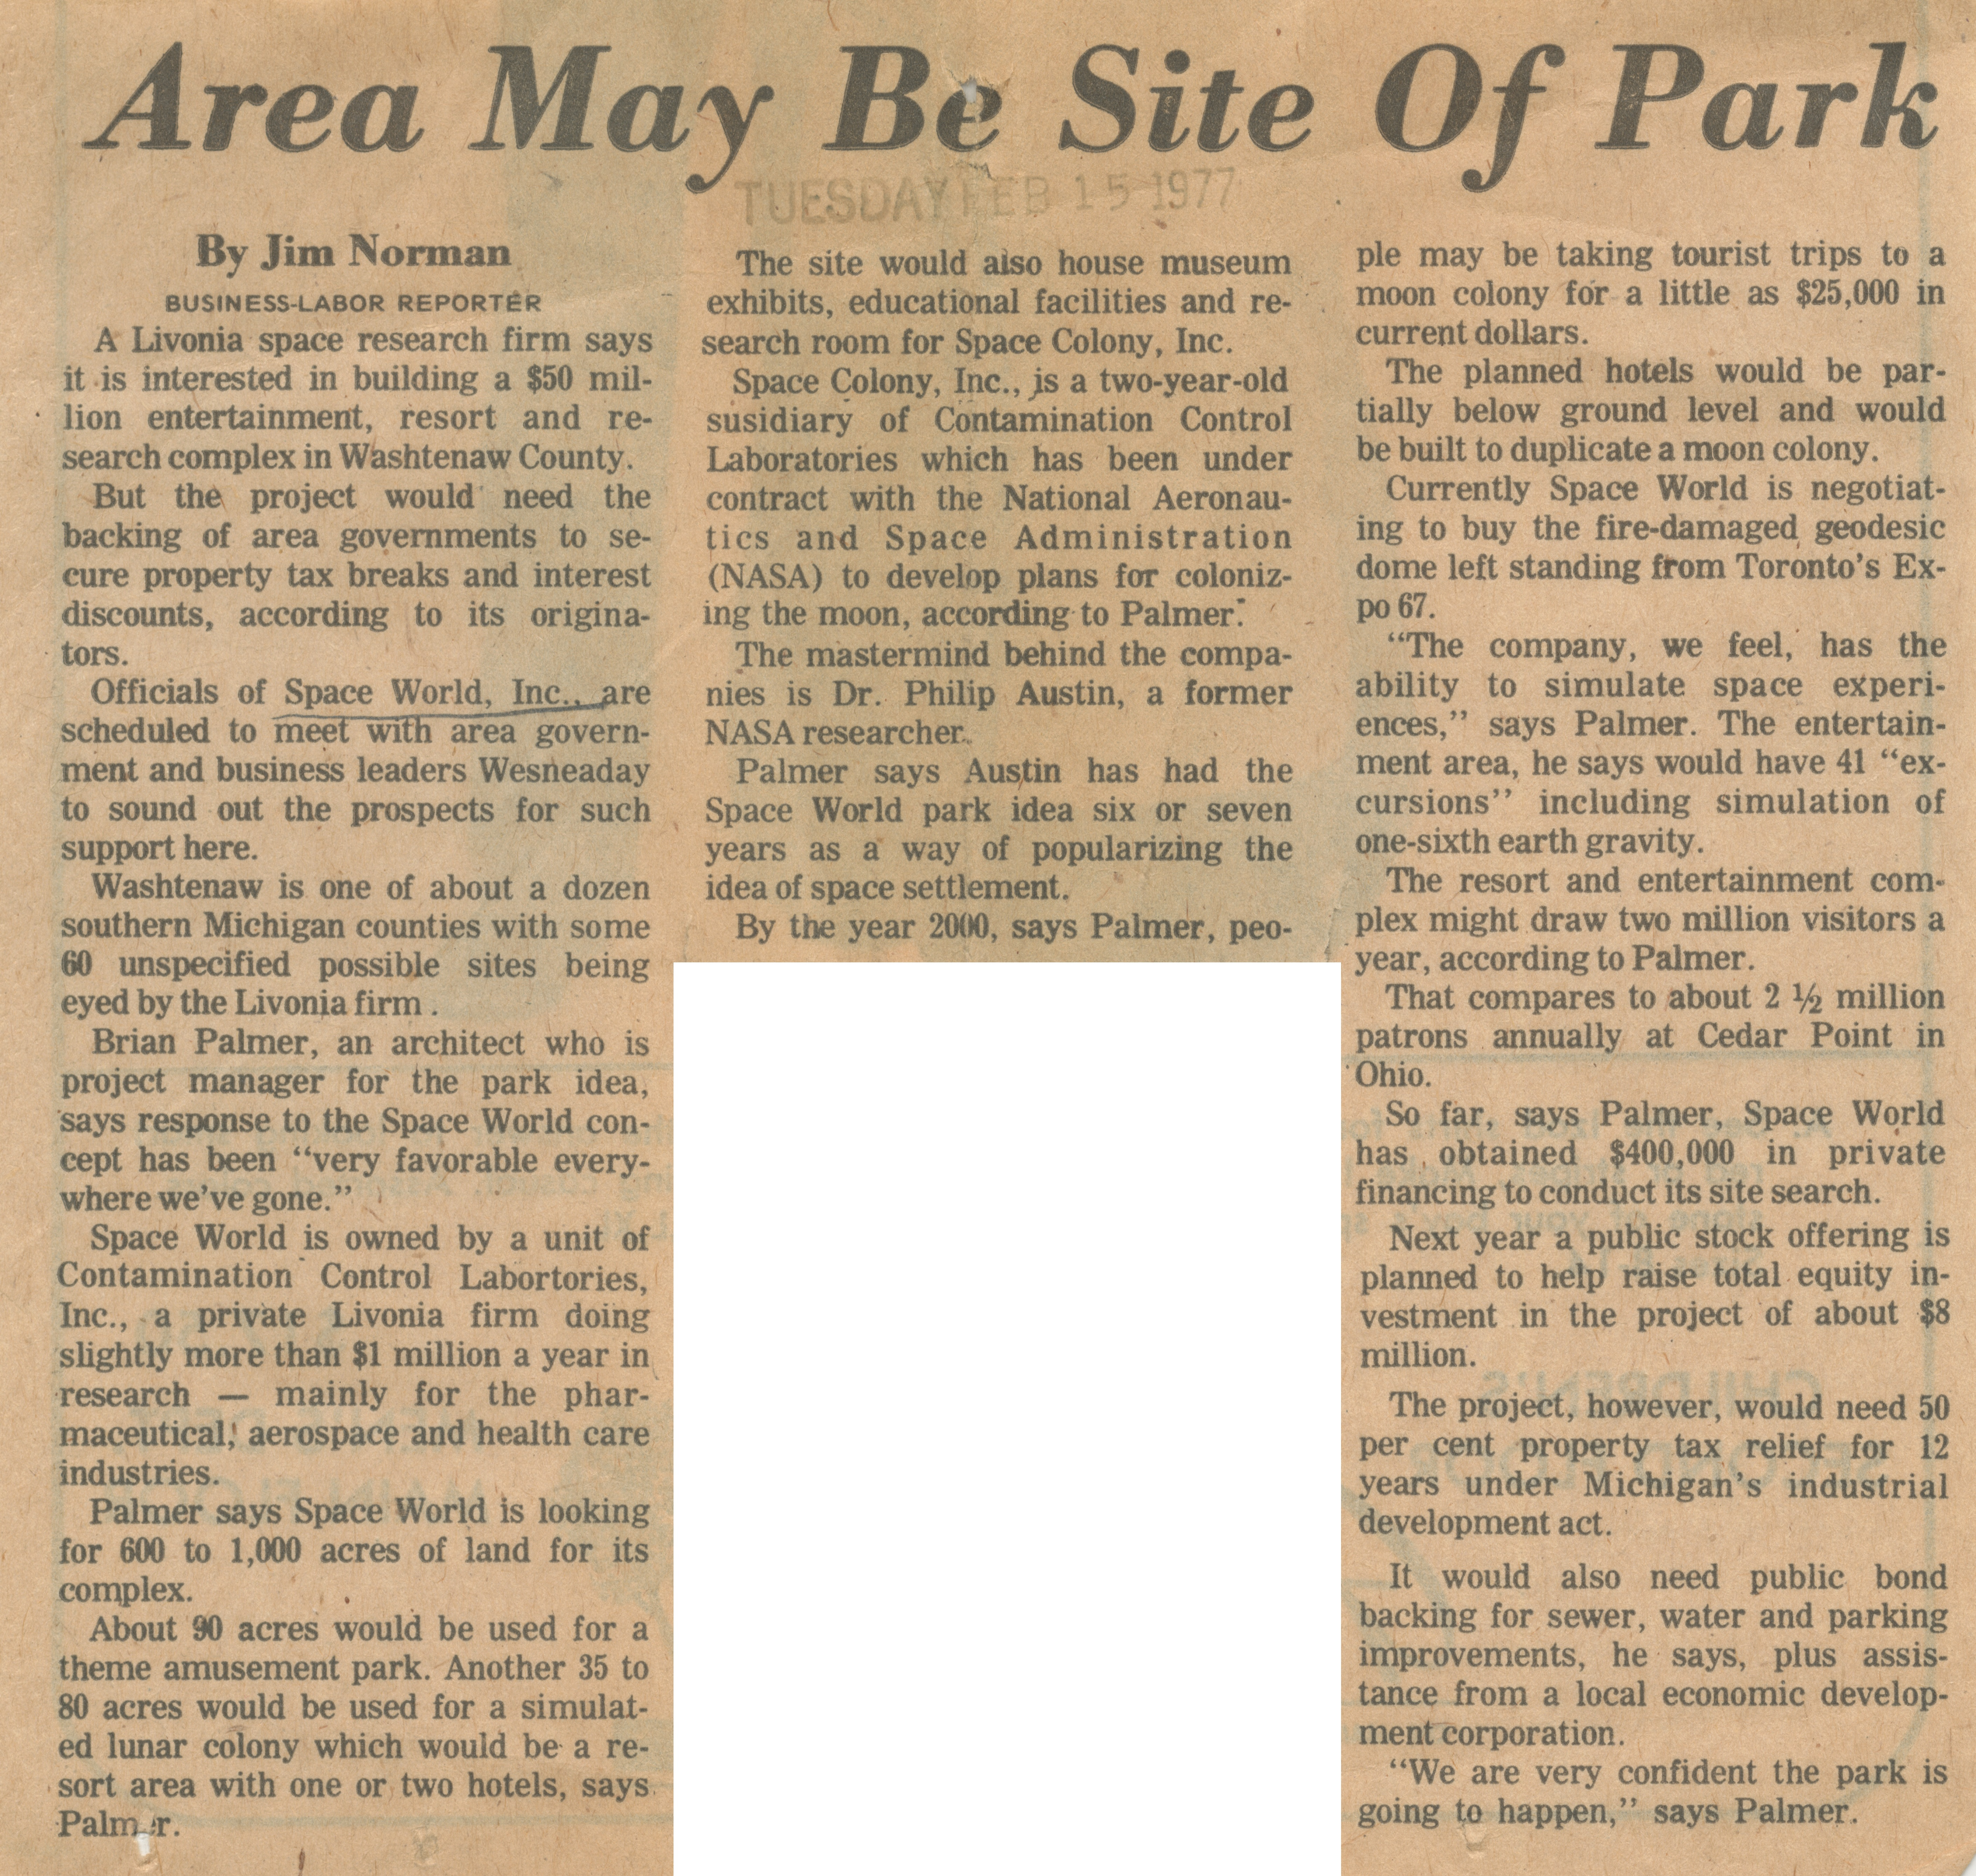 Area May Be Site Of Park image